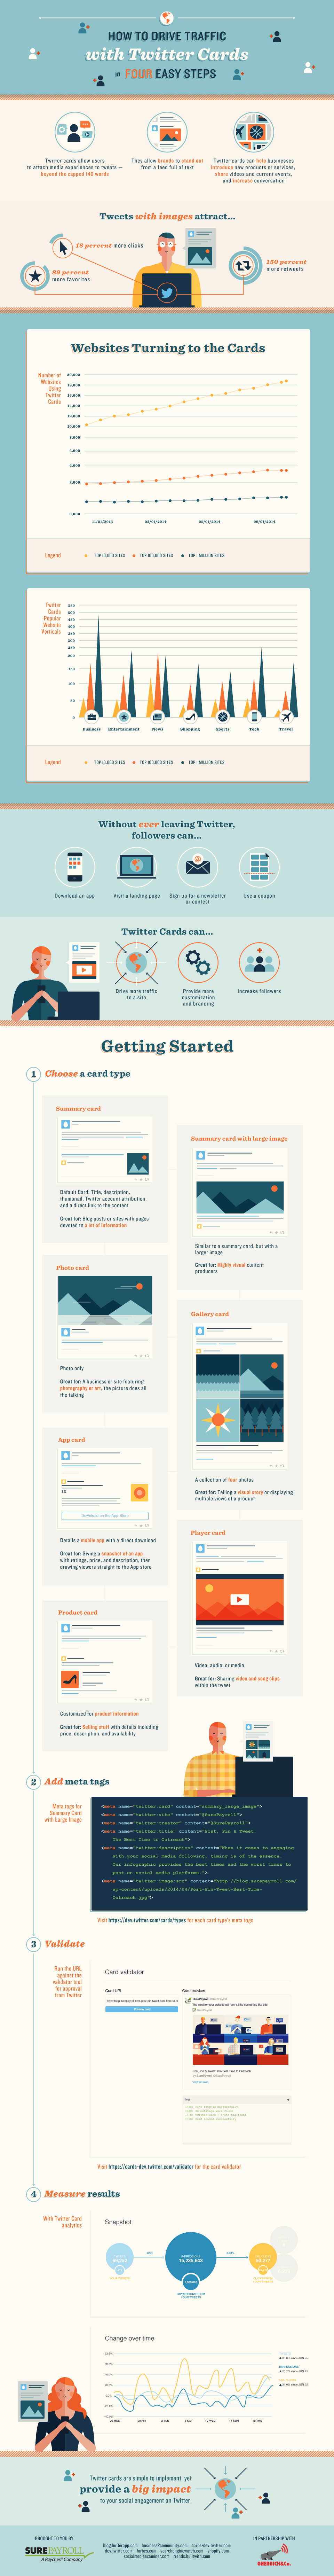 Twitter Cards Infographic